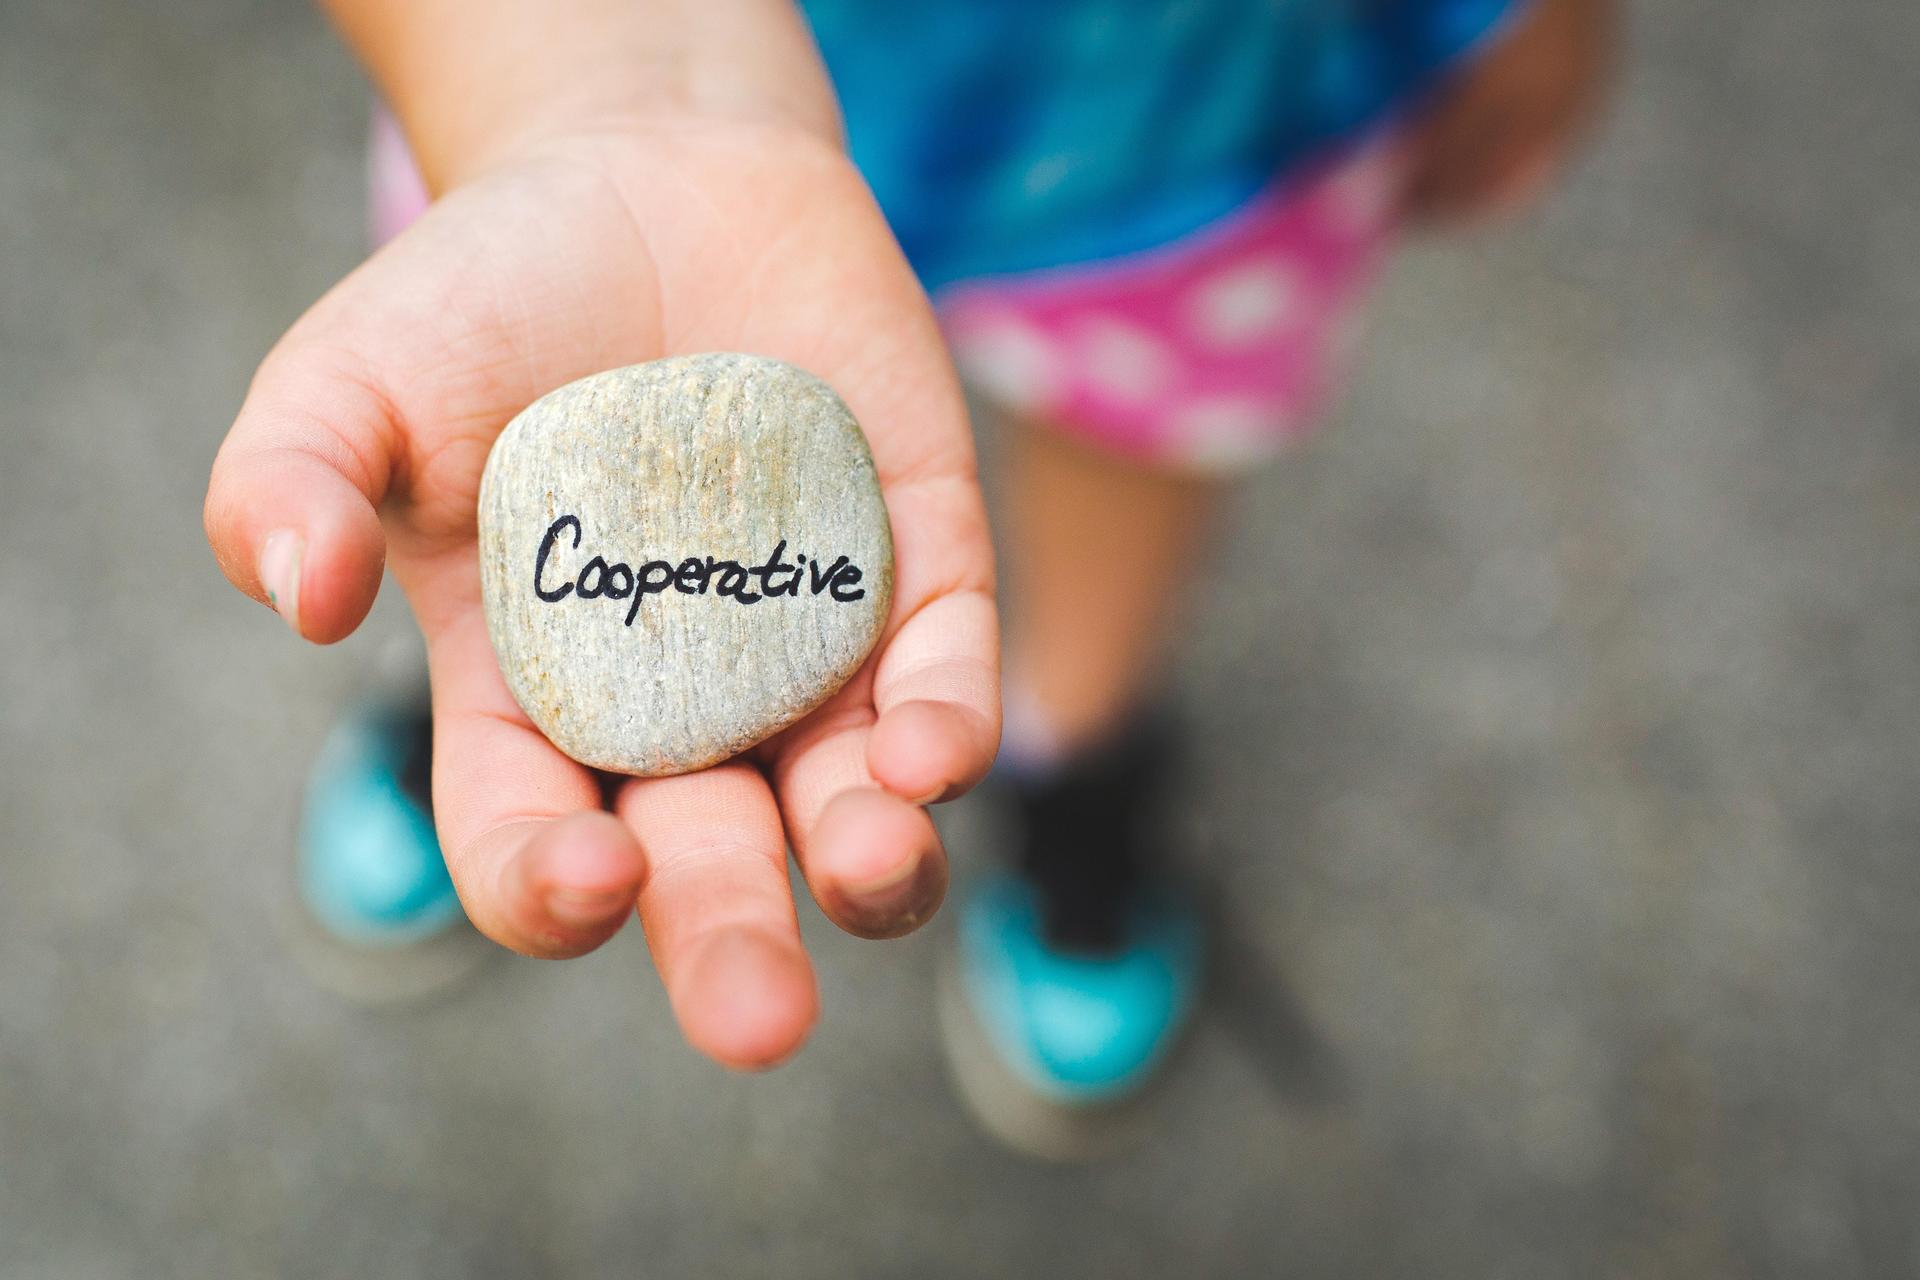 Child hand open holding stone with the word cooperative written on it